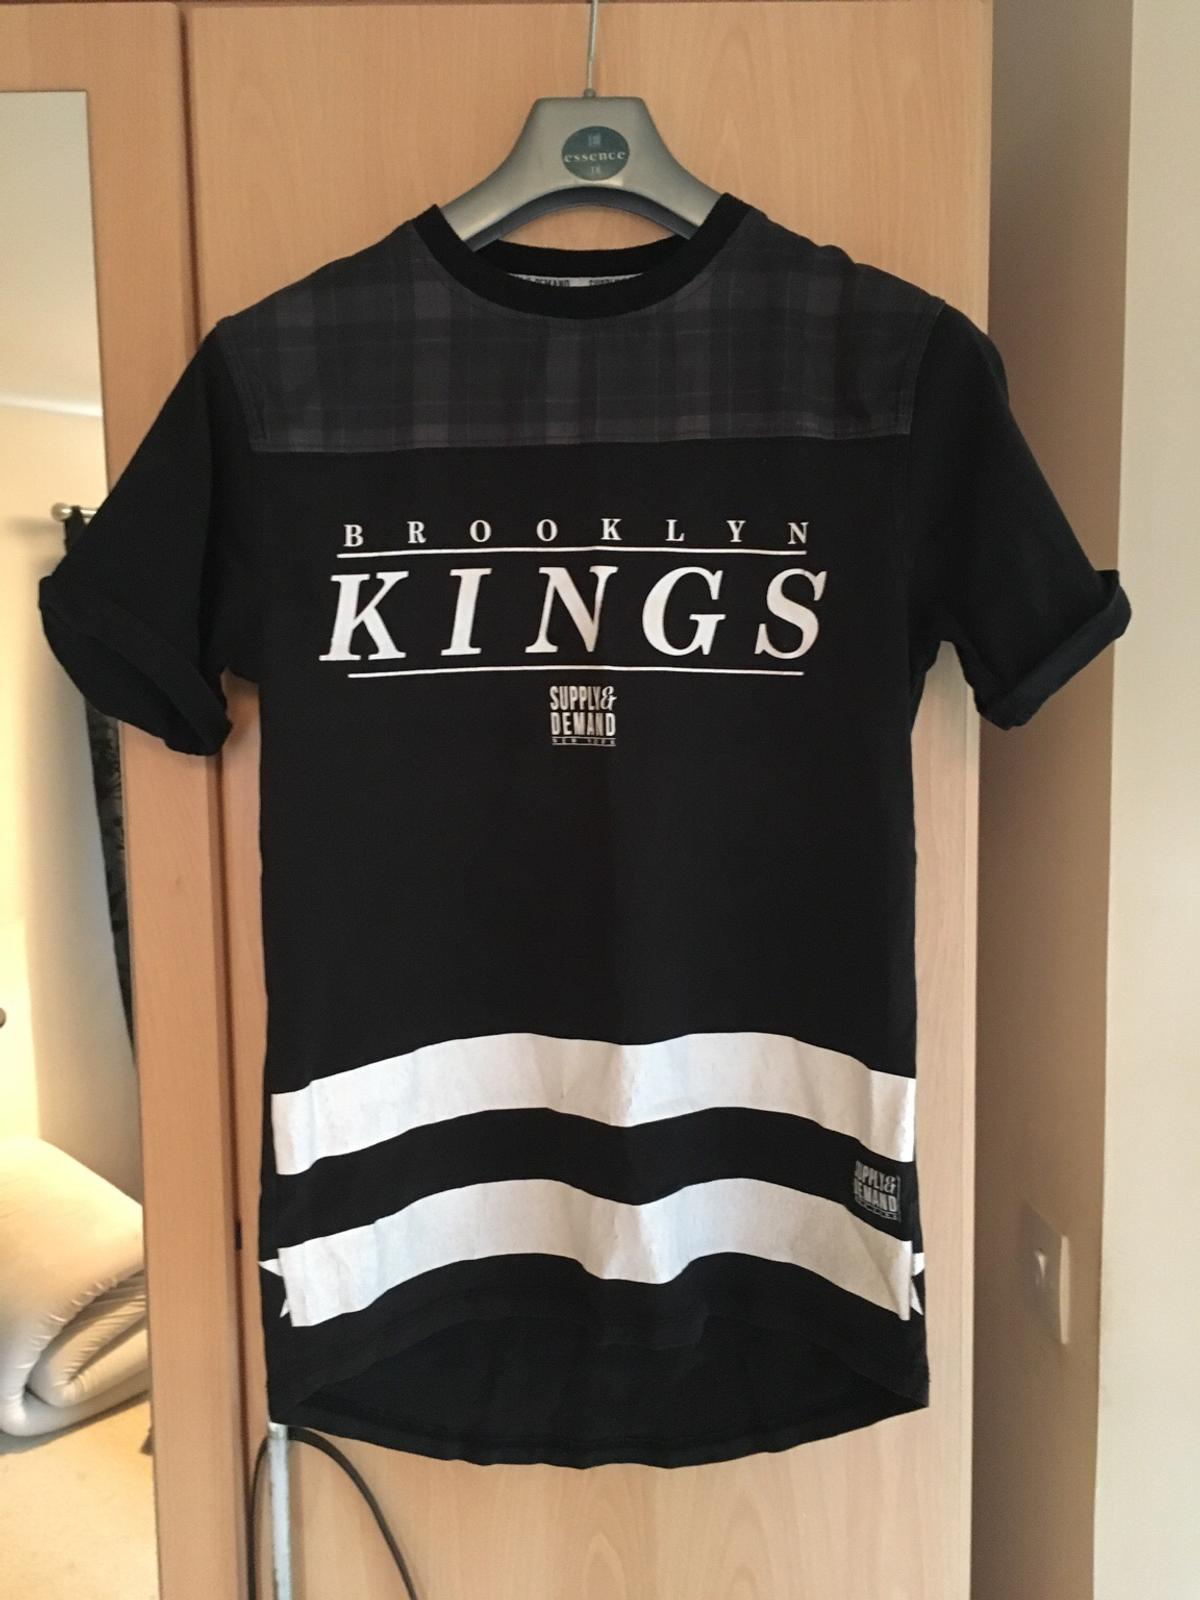 5b145aca0 Supply & Demand Brooklyn Kings Tshirt Medium in TS1 Middlesbrough ...